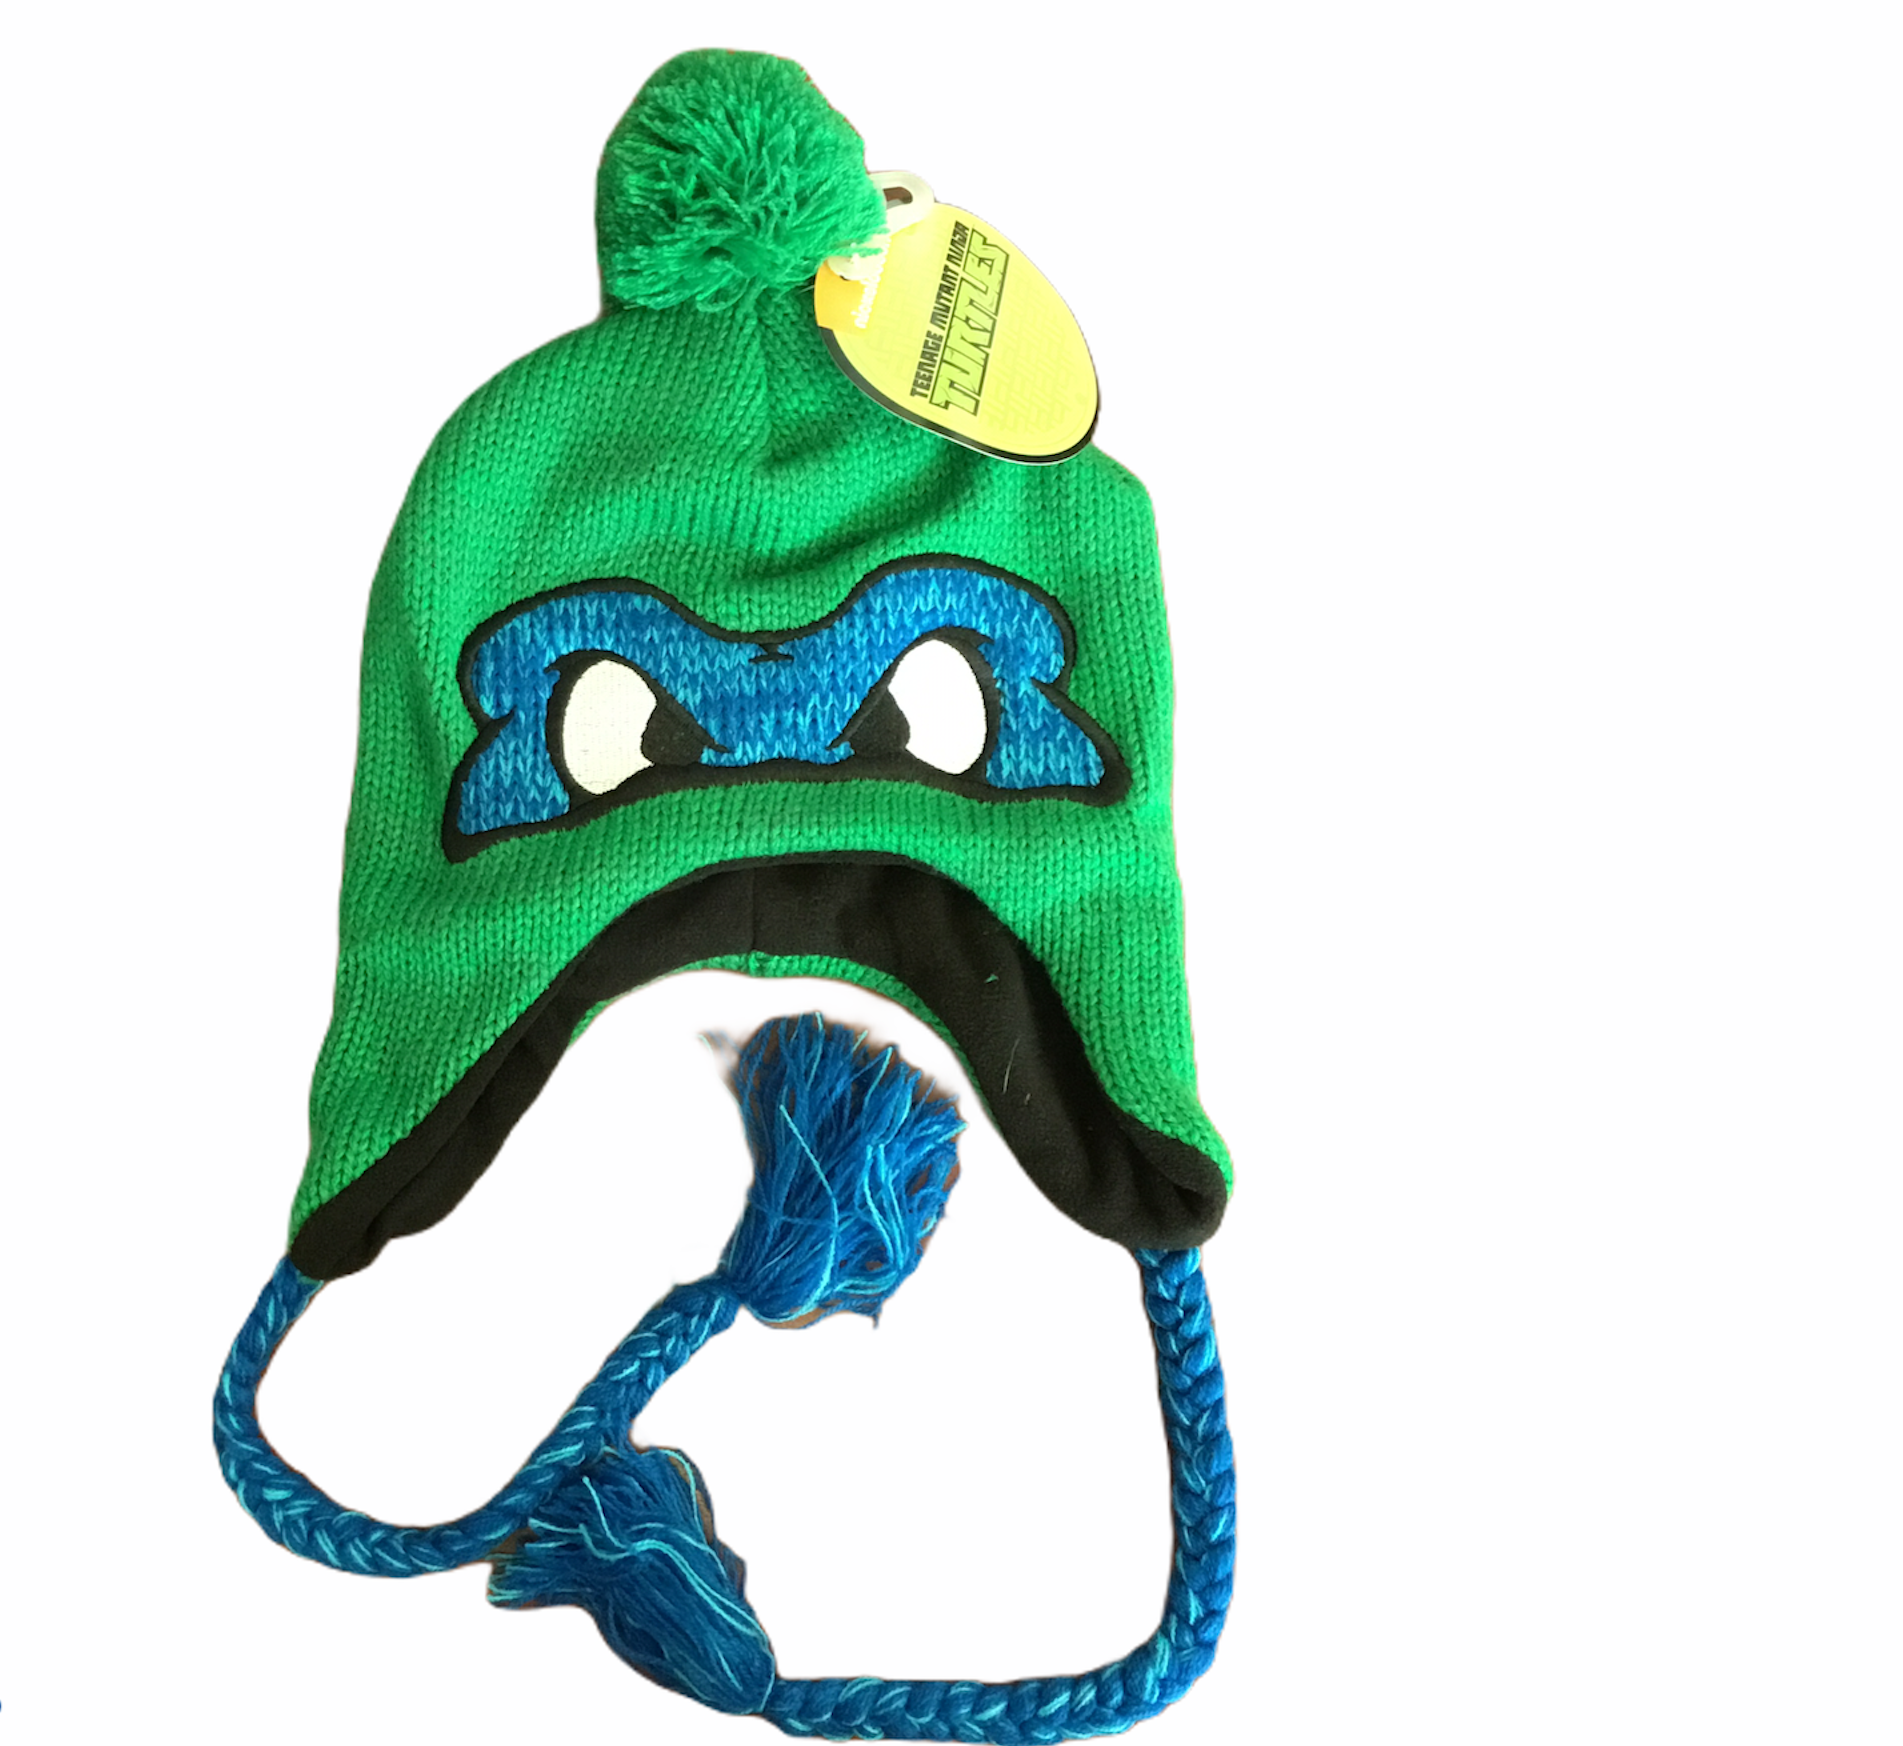 Ninja Turtles Leonardo Hat Green One Size Fits All Tuque